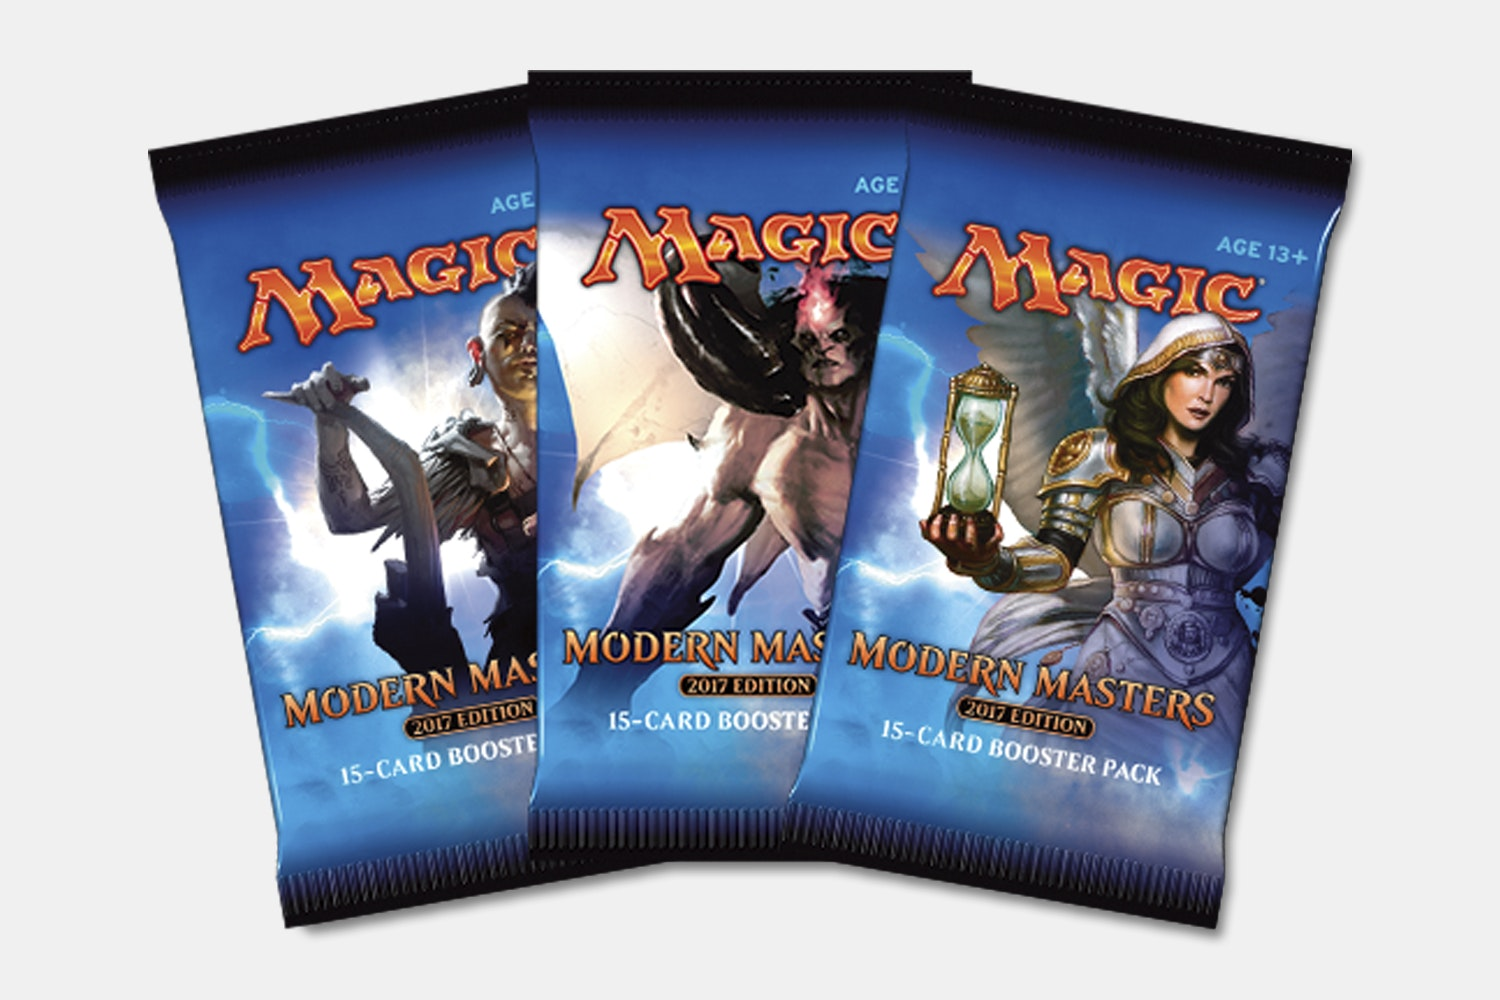 Modern Masters 2017 Booster Box (Preorder II)